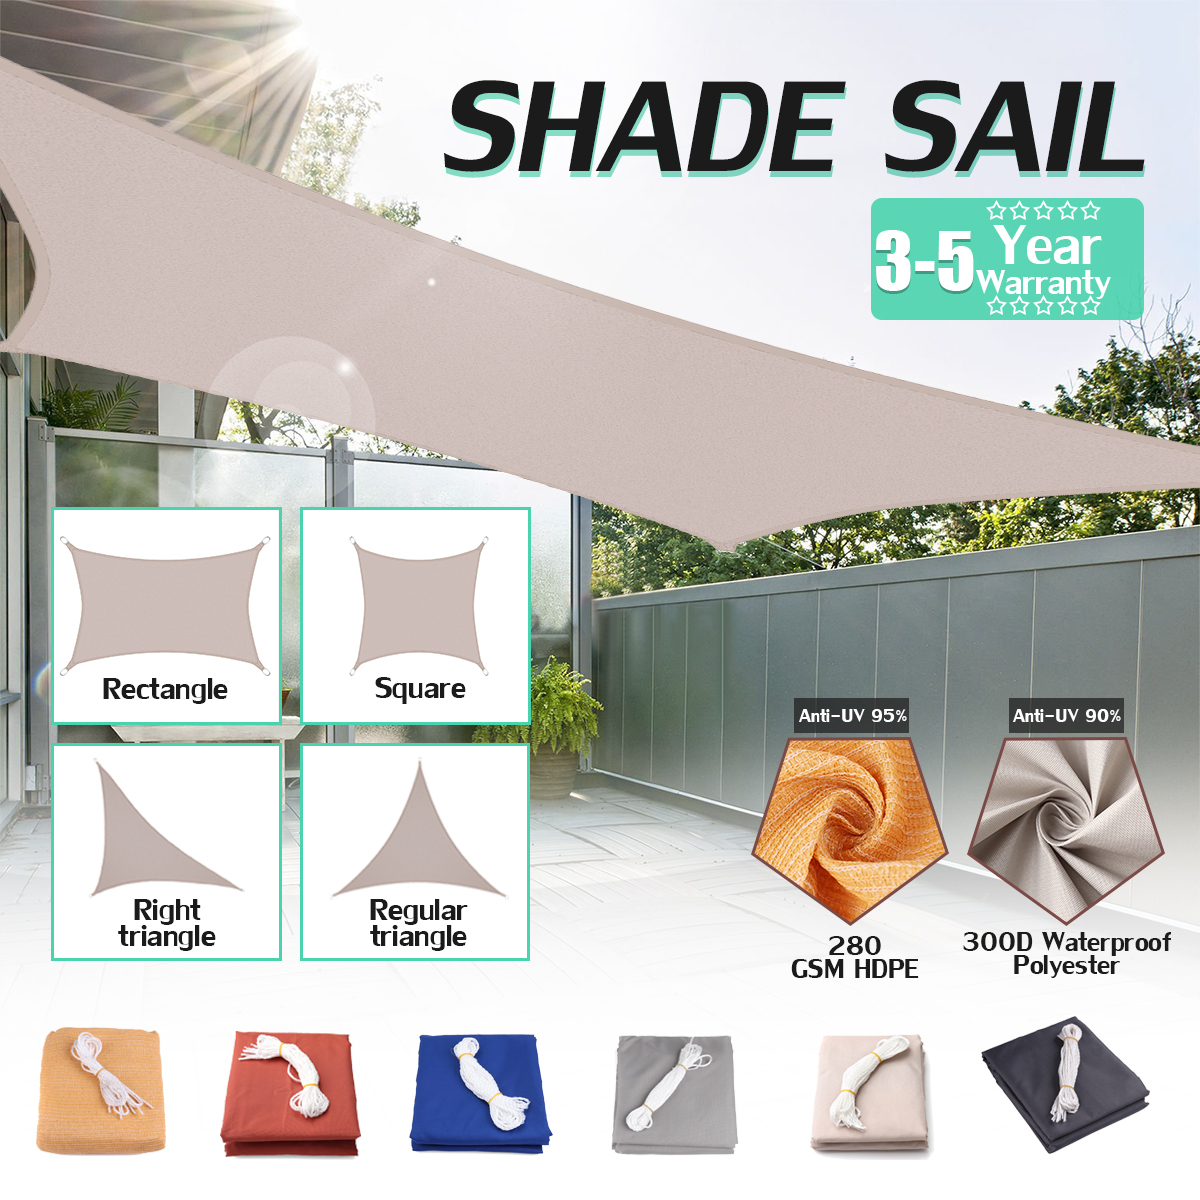 3x4x5m 280GSM HDPE Right Triangle Awning Shade Sail Sun Outdoor Waterproof Sun Shade Sail Garden Patio Pool Camping Picnic Tent triangle sun презентация ep и новое live шоу